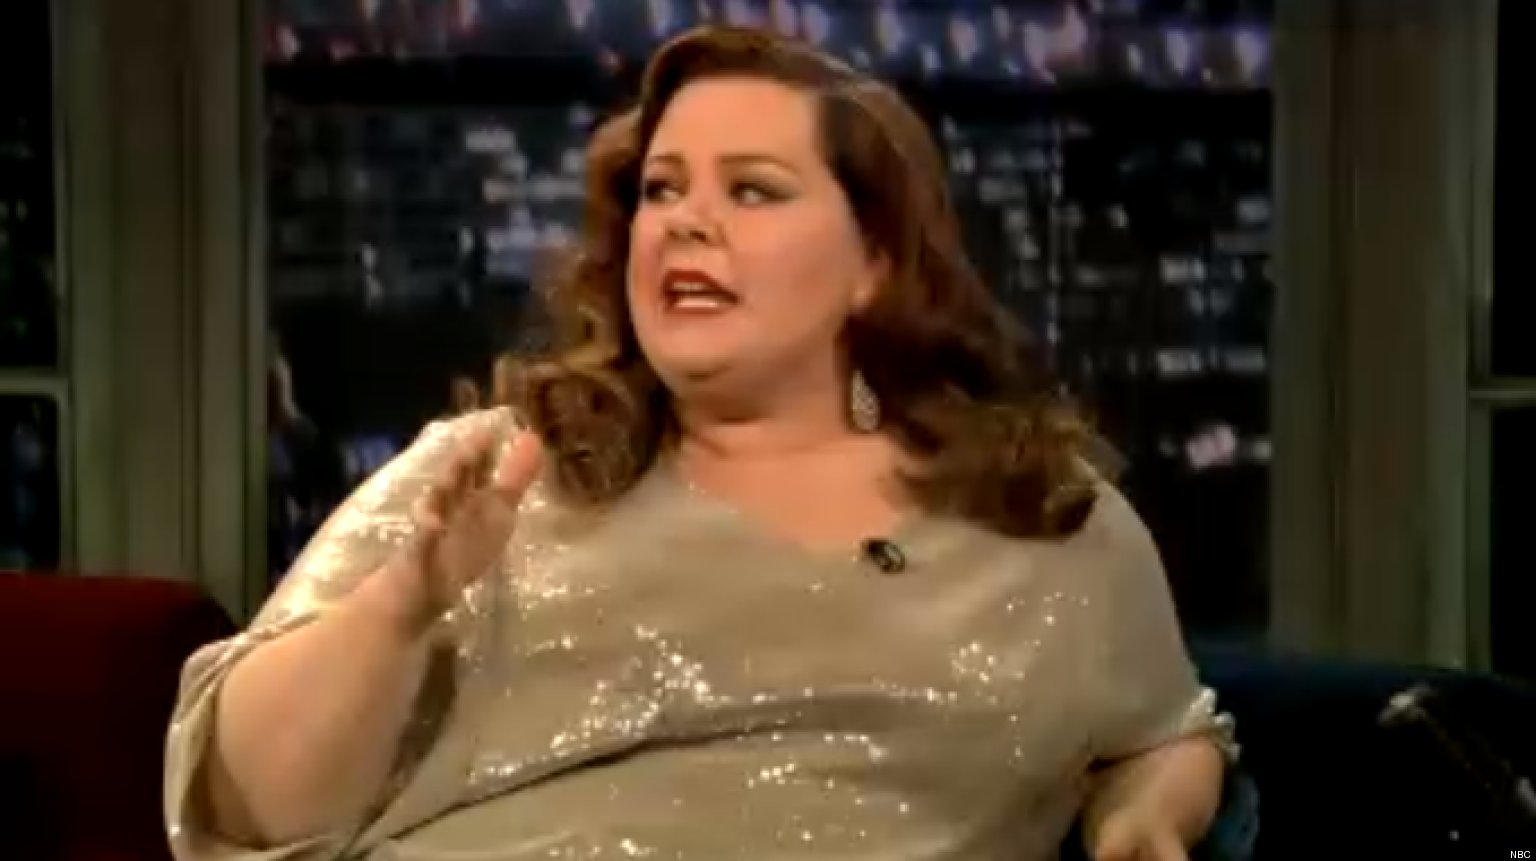 Melissa mccarthy pizza eating business snl celebrity